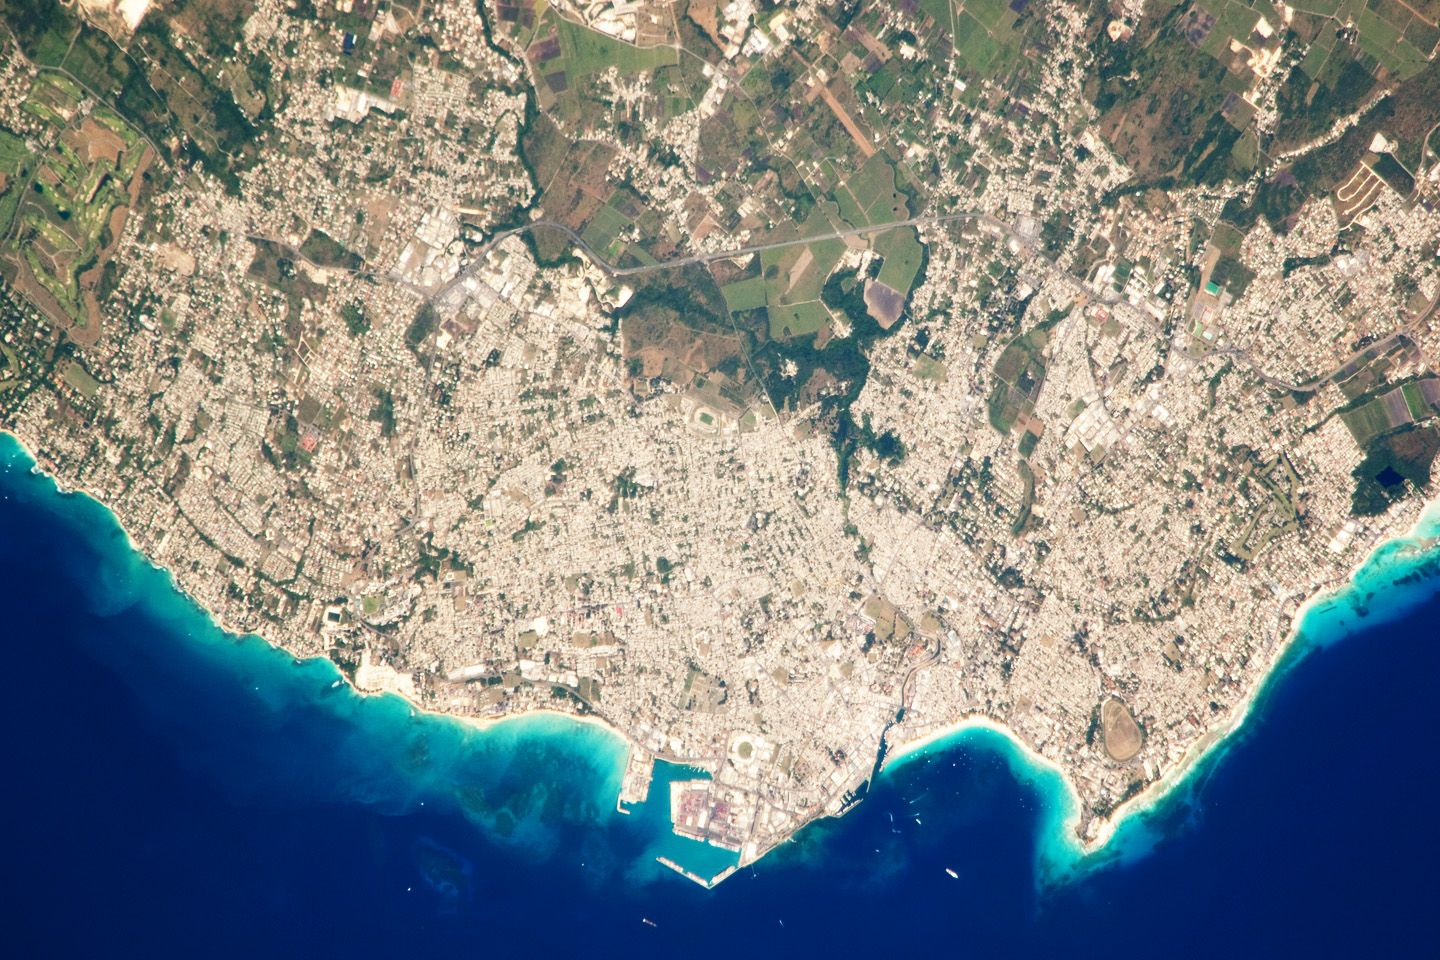 Today's Image of the Day comes thanks to the NASA Earth Observatory and features a look at Bridgetown, Barbados and the Carlisle Bay.